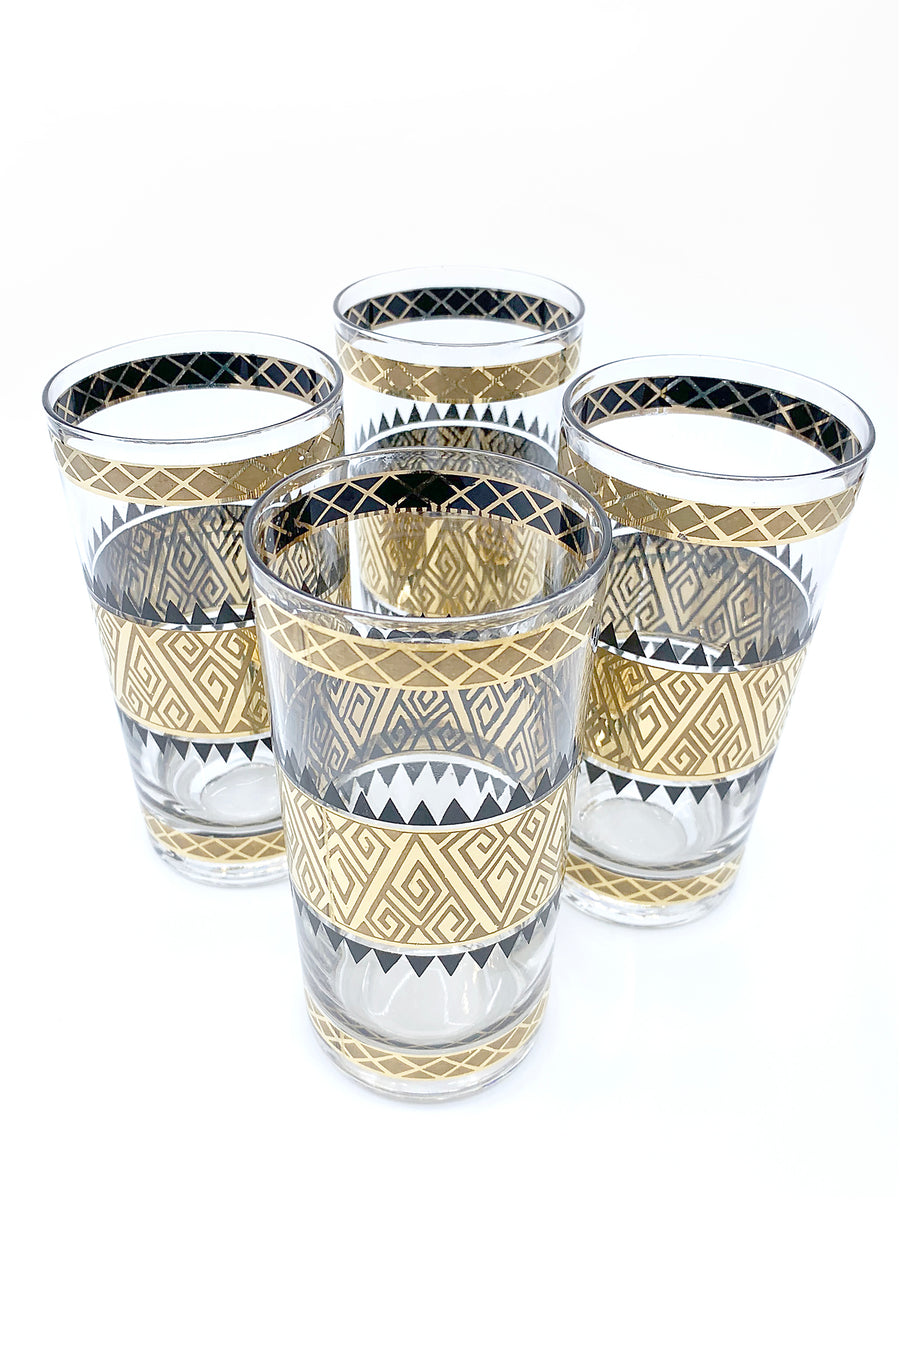 TAB173 CULVER PISA GLASSES SET OF 4